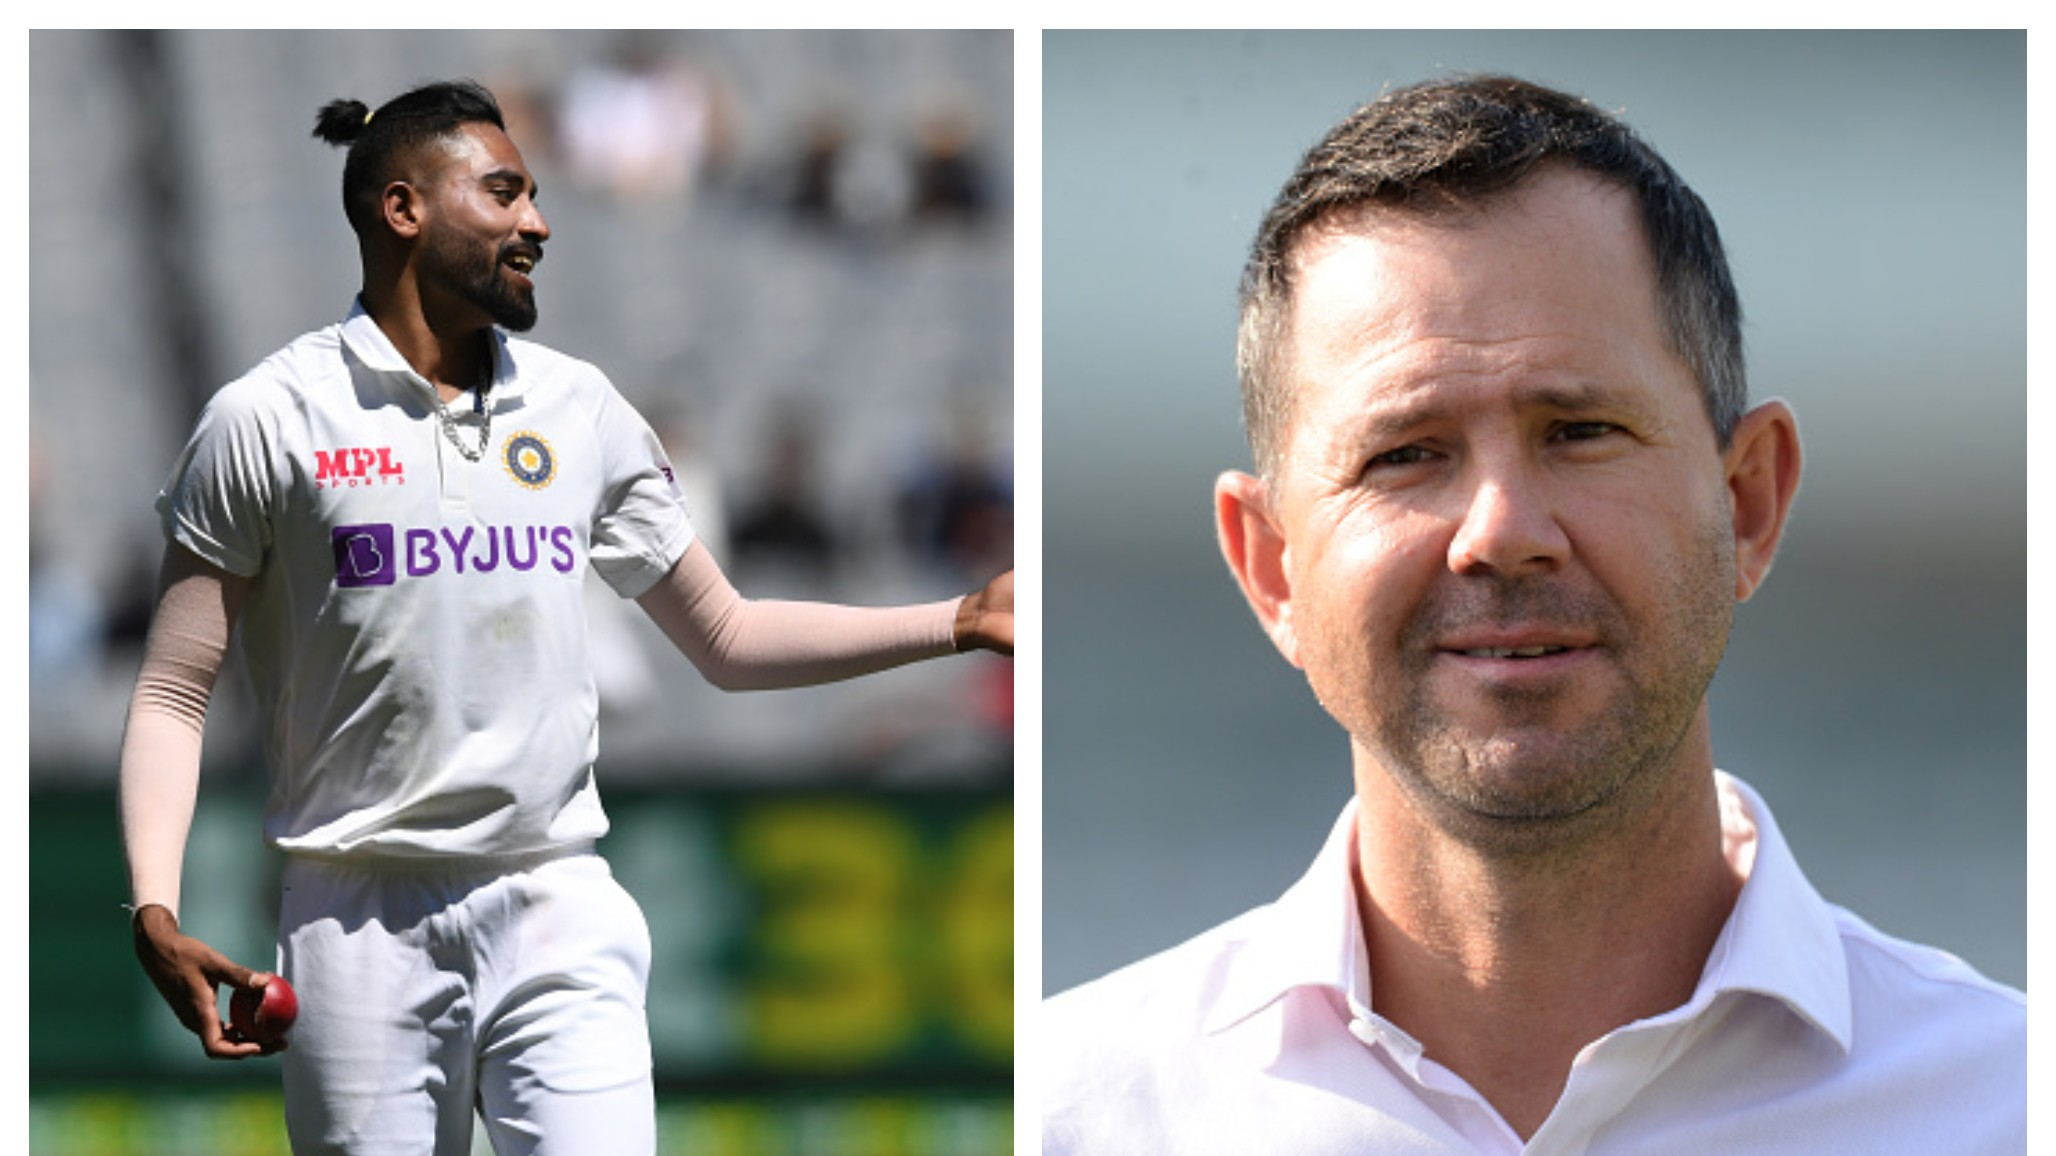 AUS v IND 2020-21: WATCH - Ricky Ponting praises Mohammed Siraj after